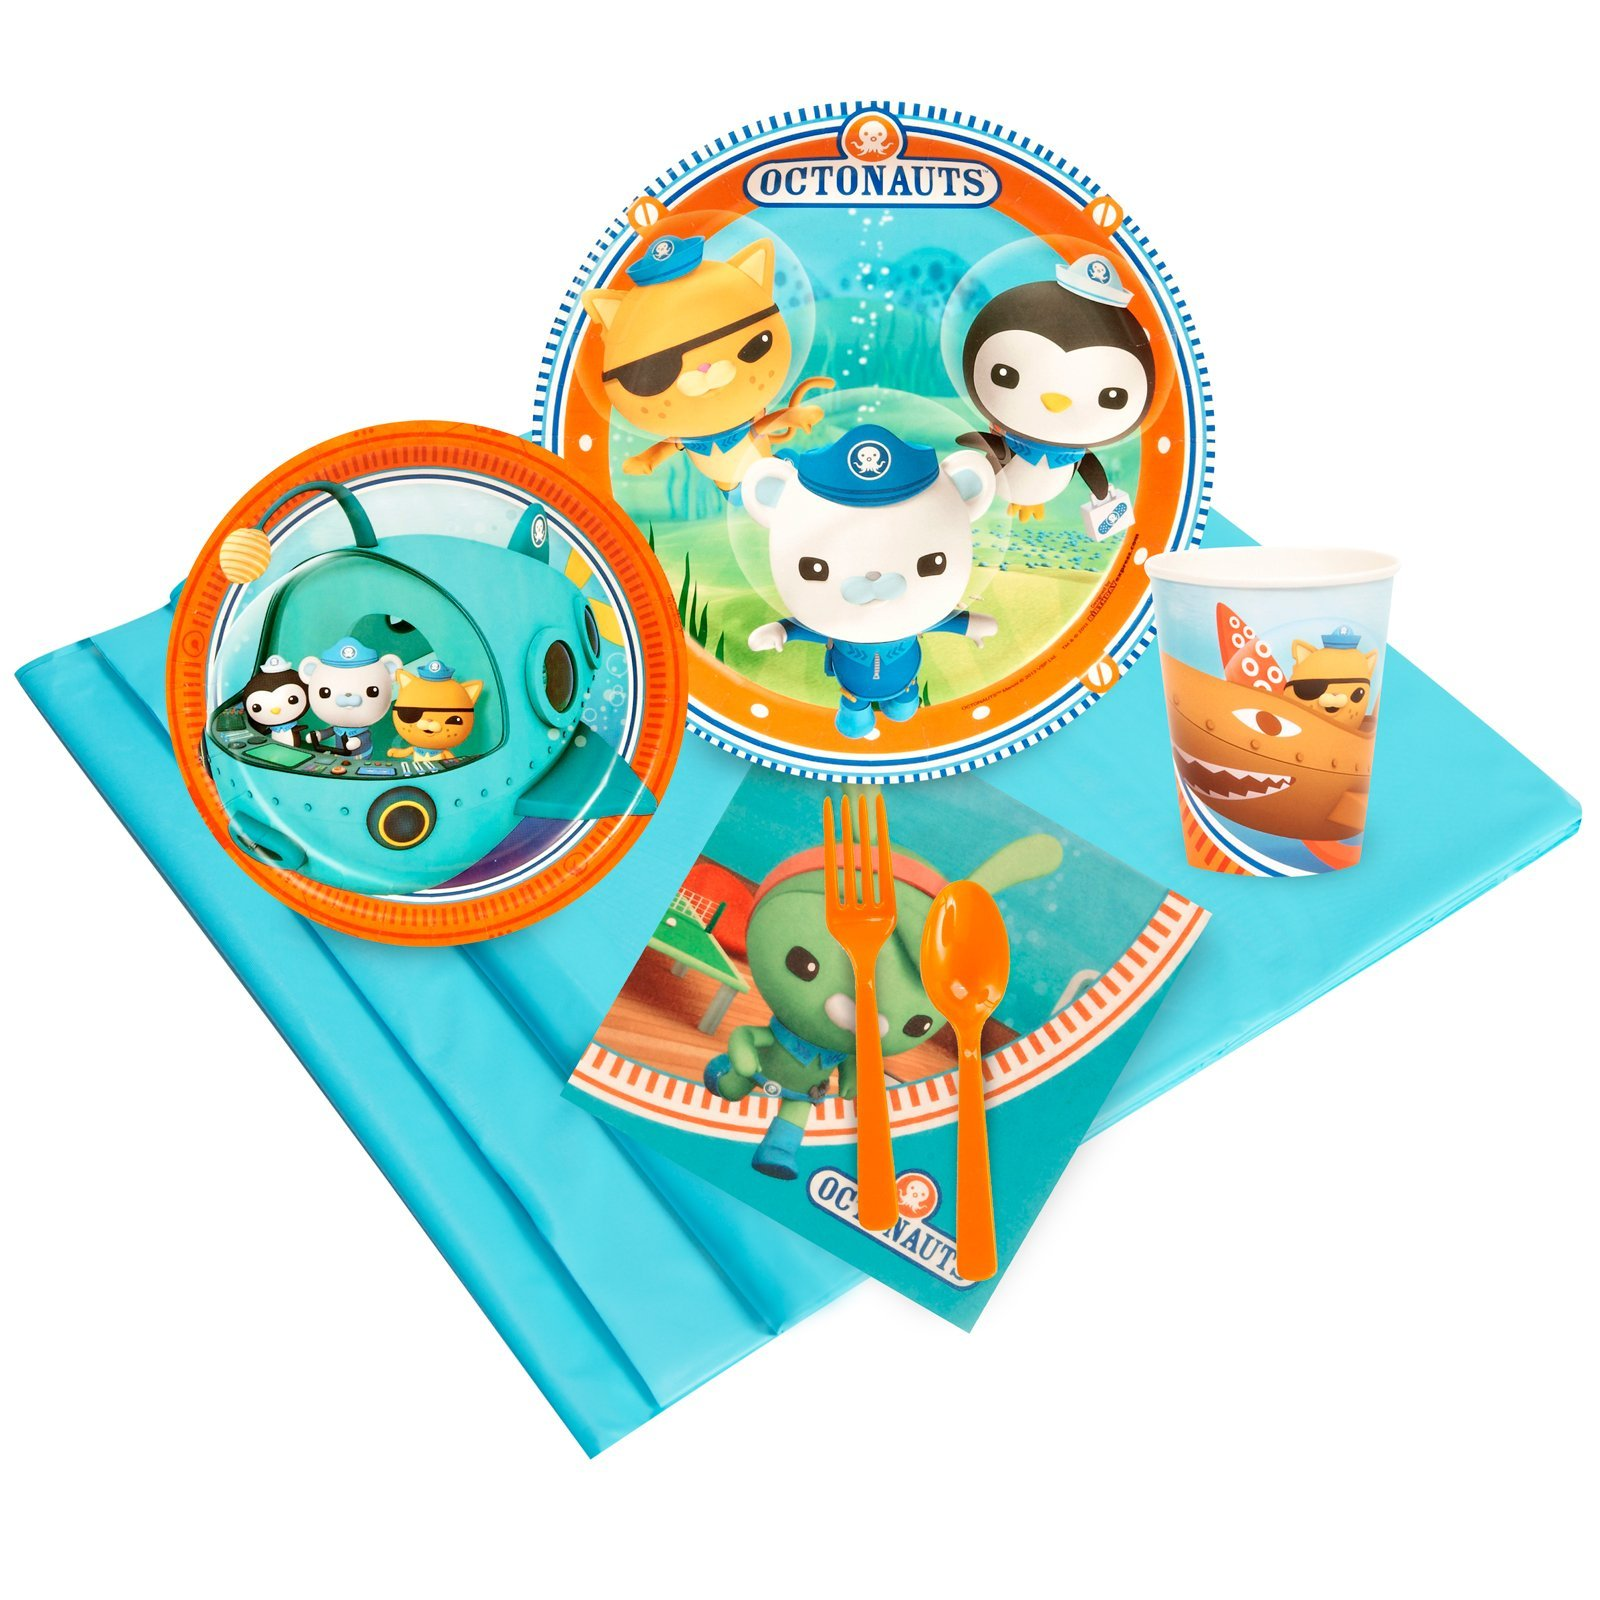 Octonauts Edible Image Cake Topper Birthday Cake PERSONALIZED FREE